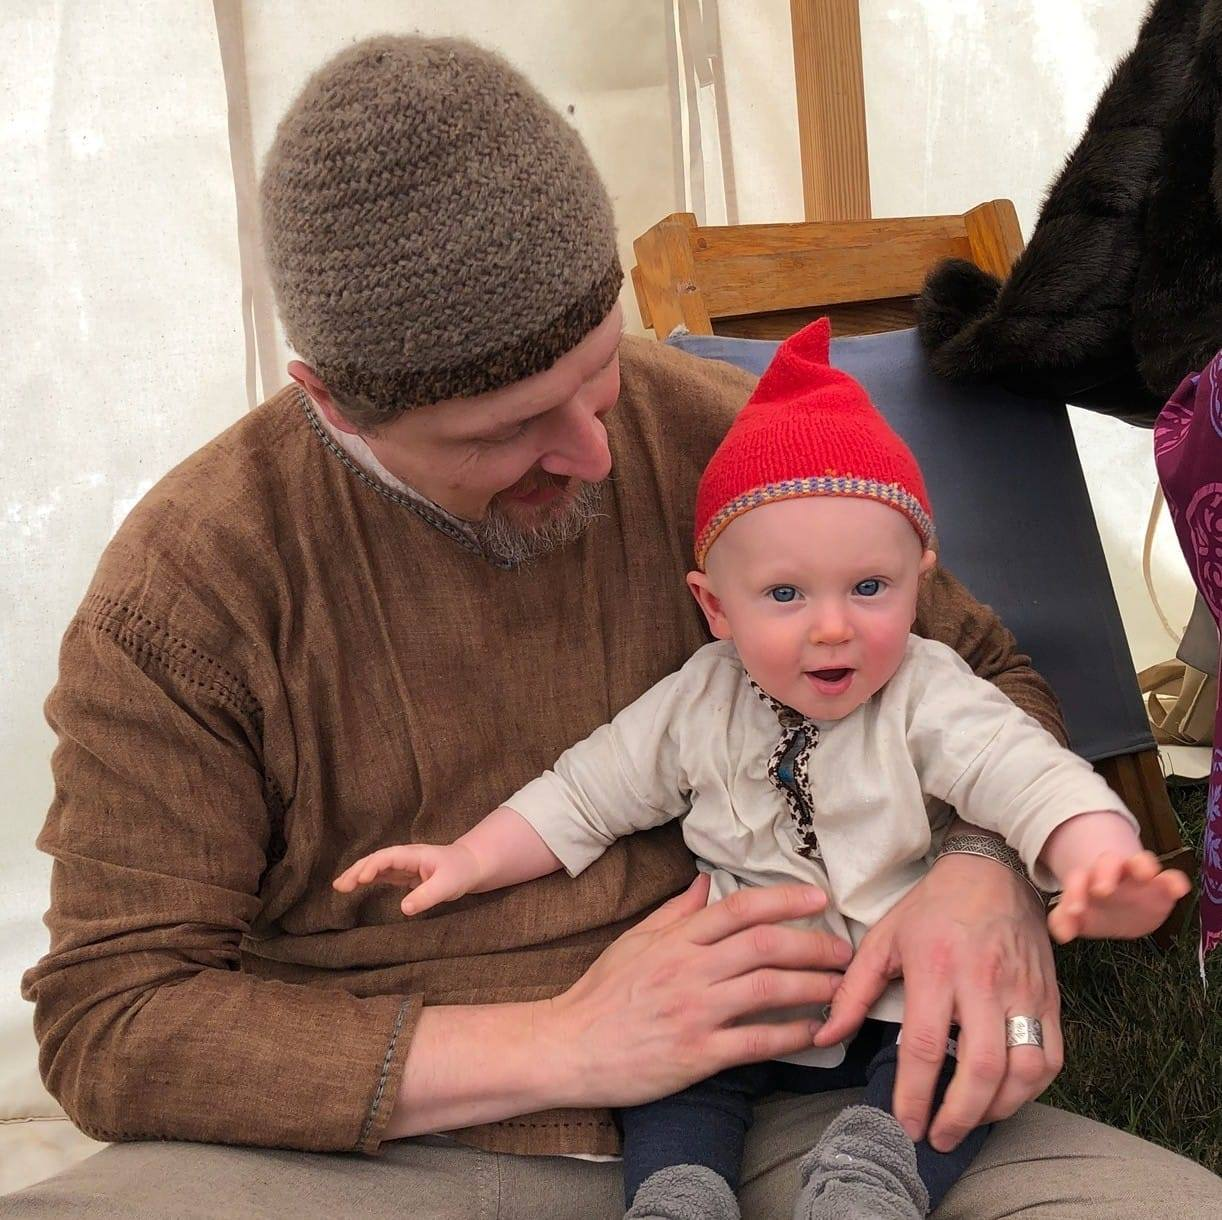 A baby sits on his father's lap, wearing a beige tunic and a bright red hand-knit hat with a pointy top.